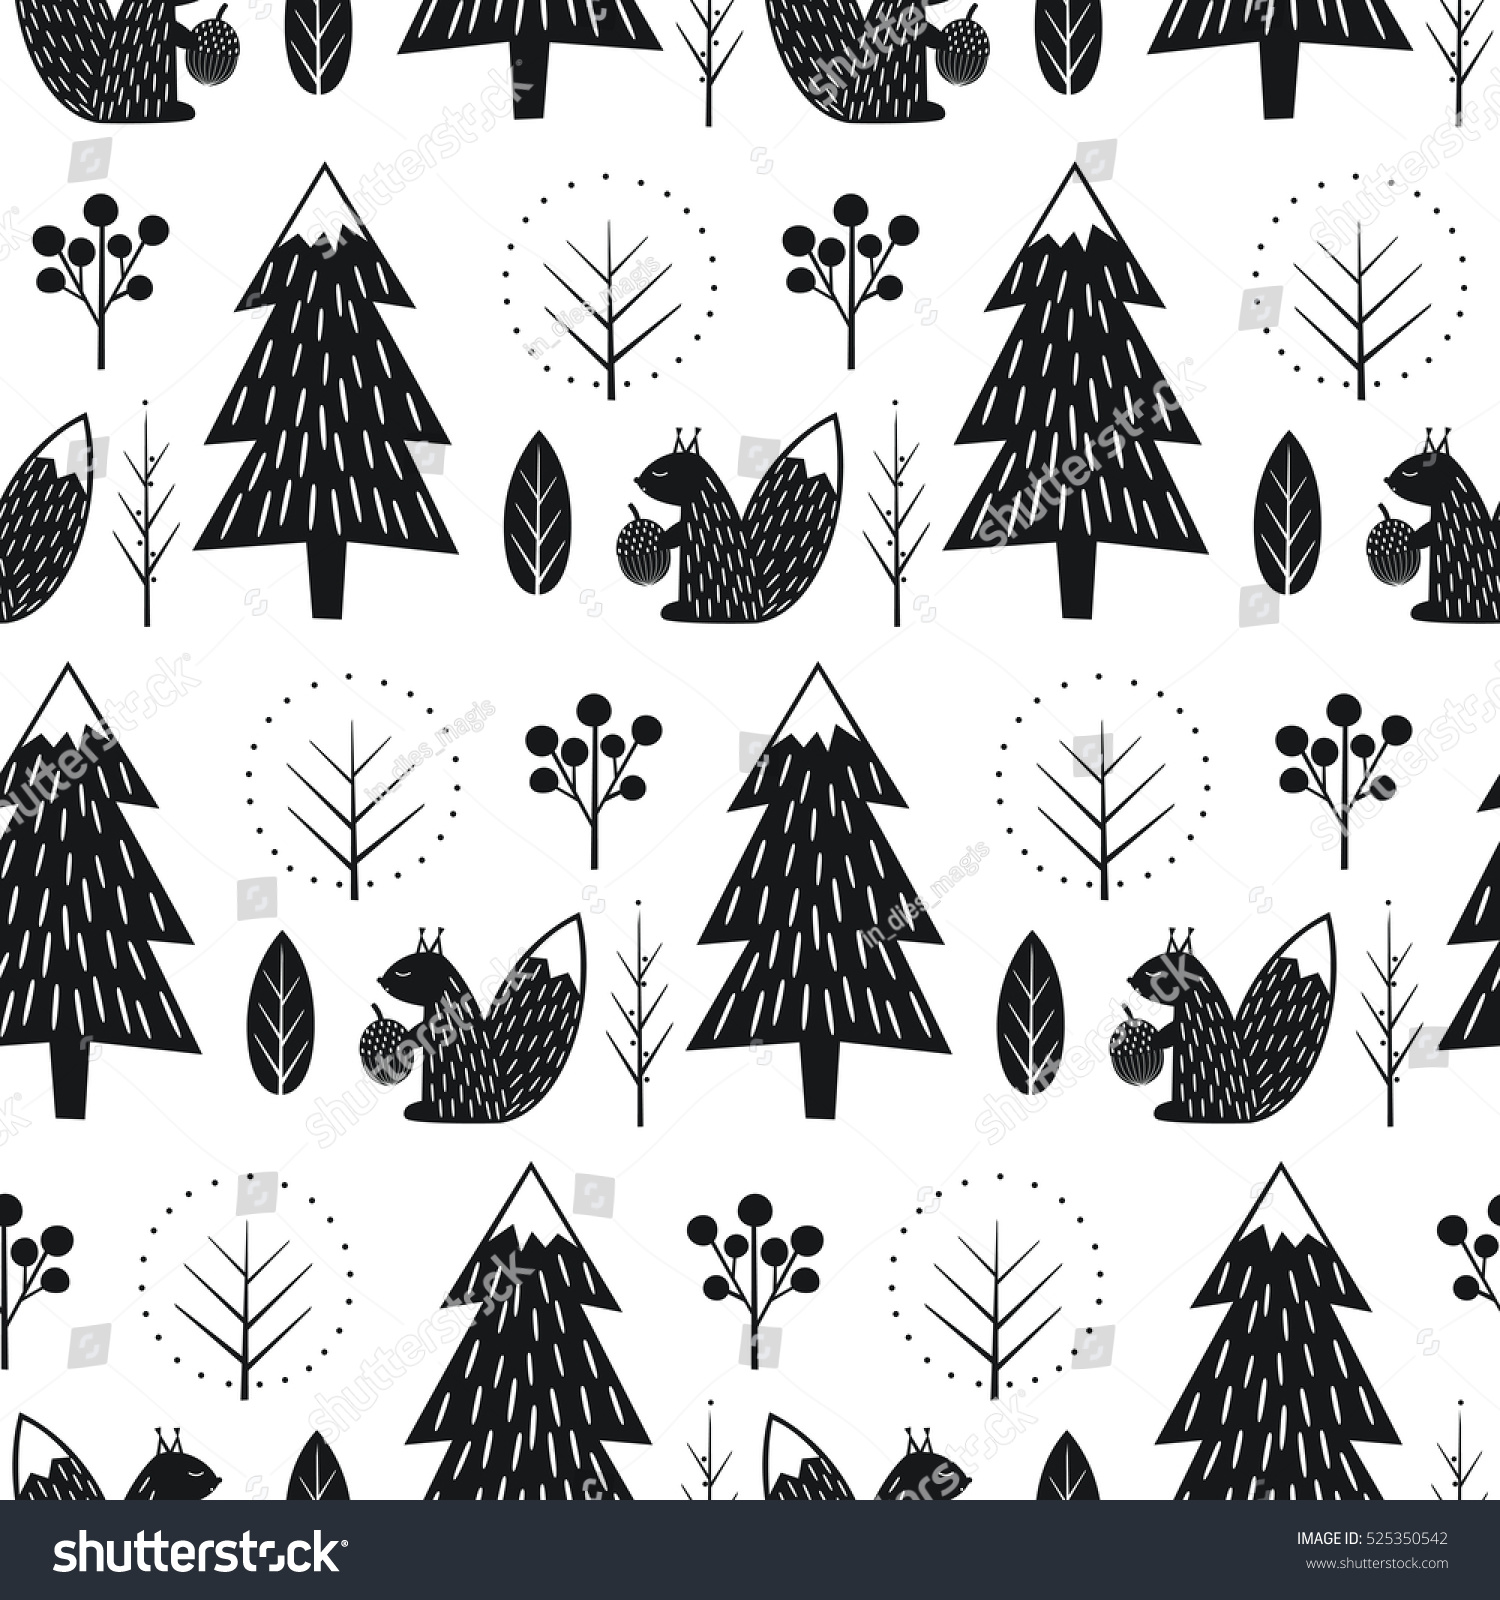 Seamless fir tree scandinavian pattern textile background wrapping - Squirrel In Forest Seamless Pattern Black And White Scandinavian Style Nature Illustration Cute Winter